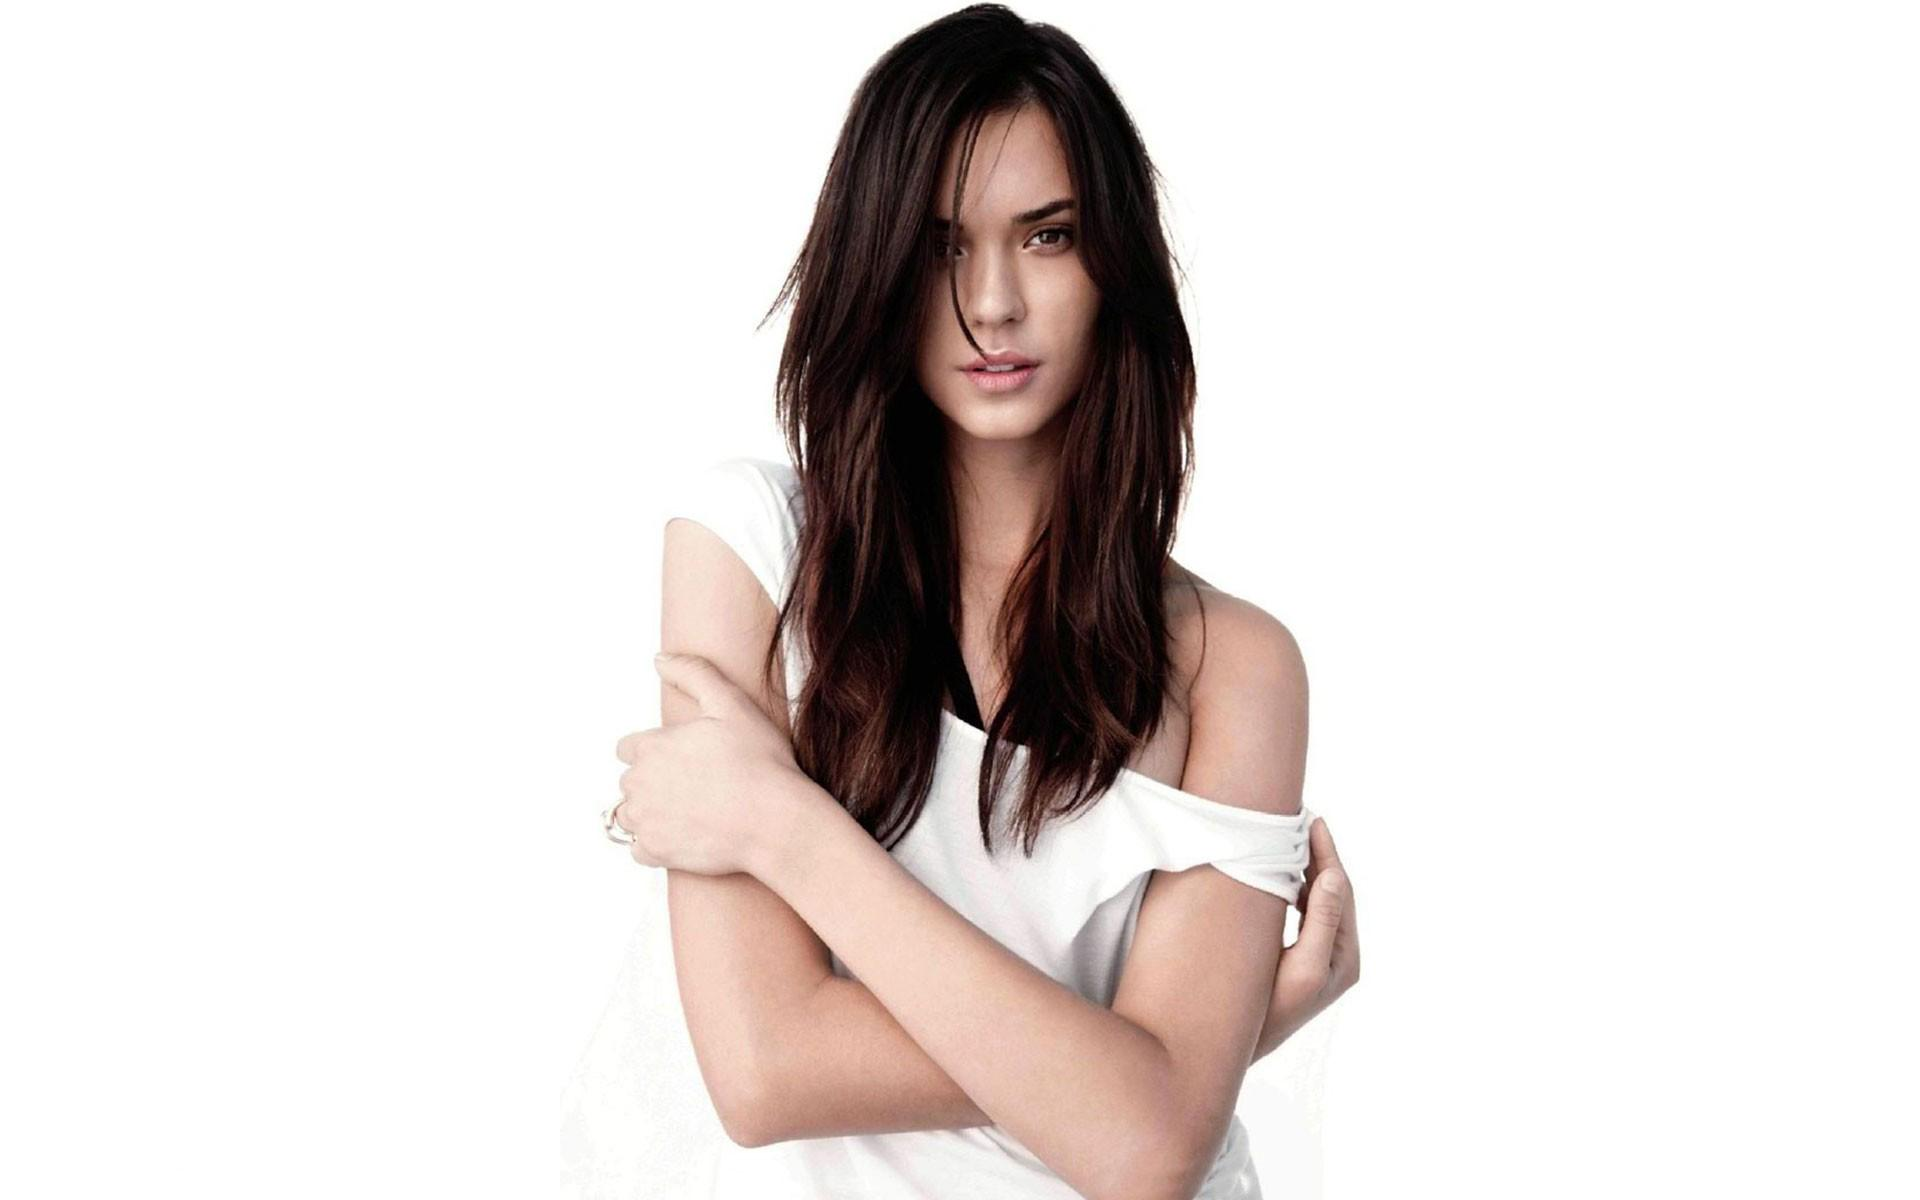 1920x1200 - Odette Annable Wallpapers 9